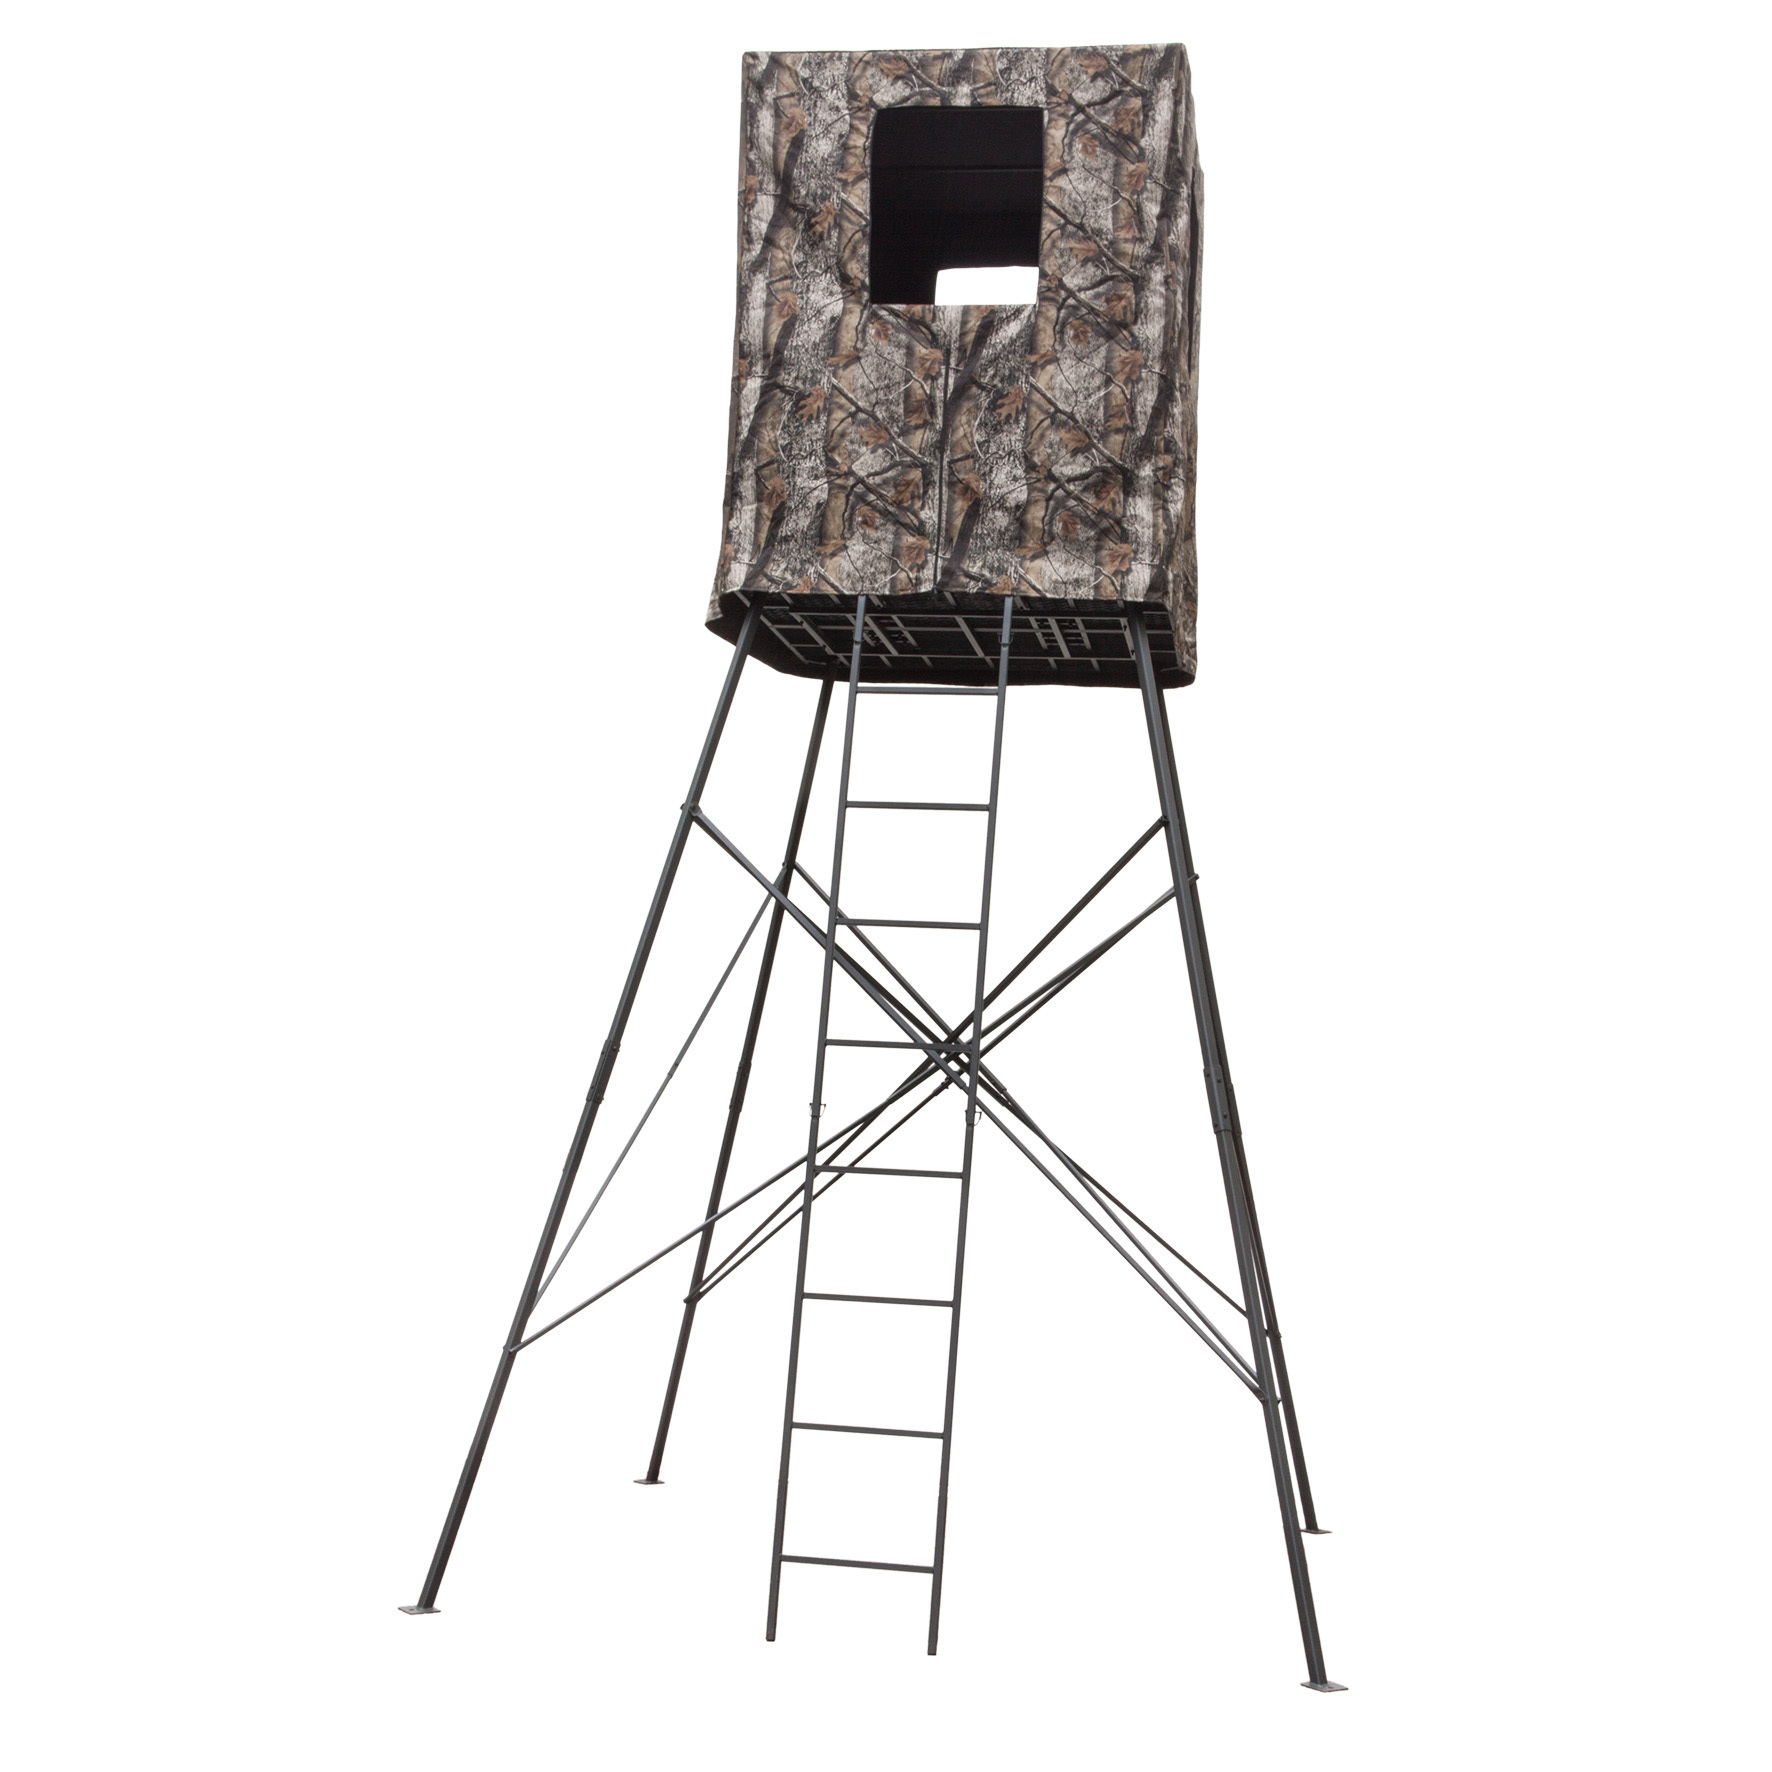 Big Dog 14' Guard Tower 2-person Quad Pod Deer Stand with